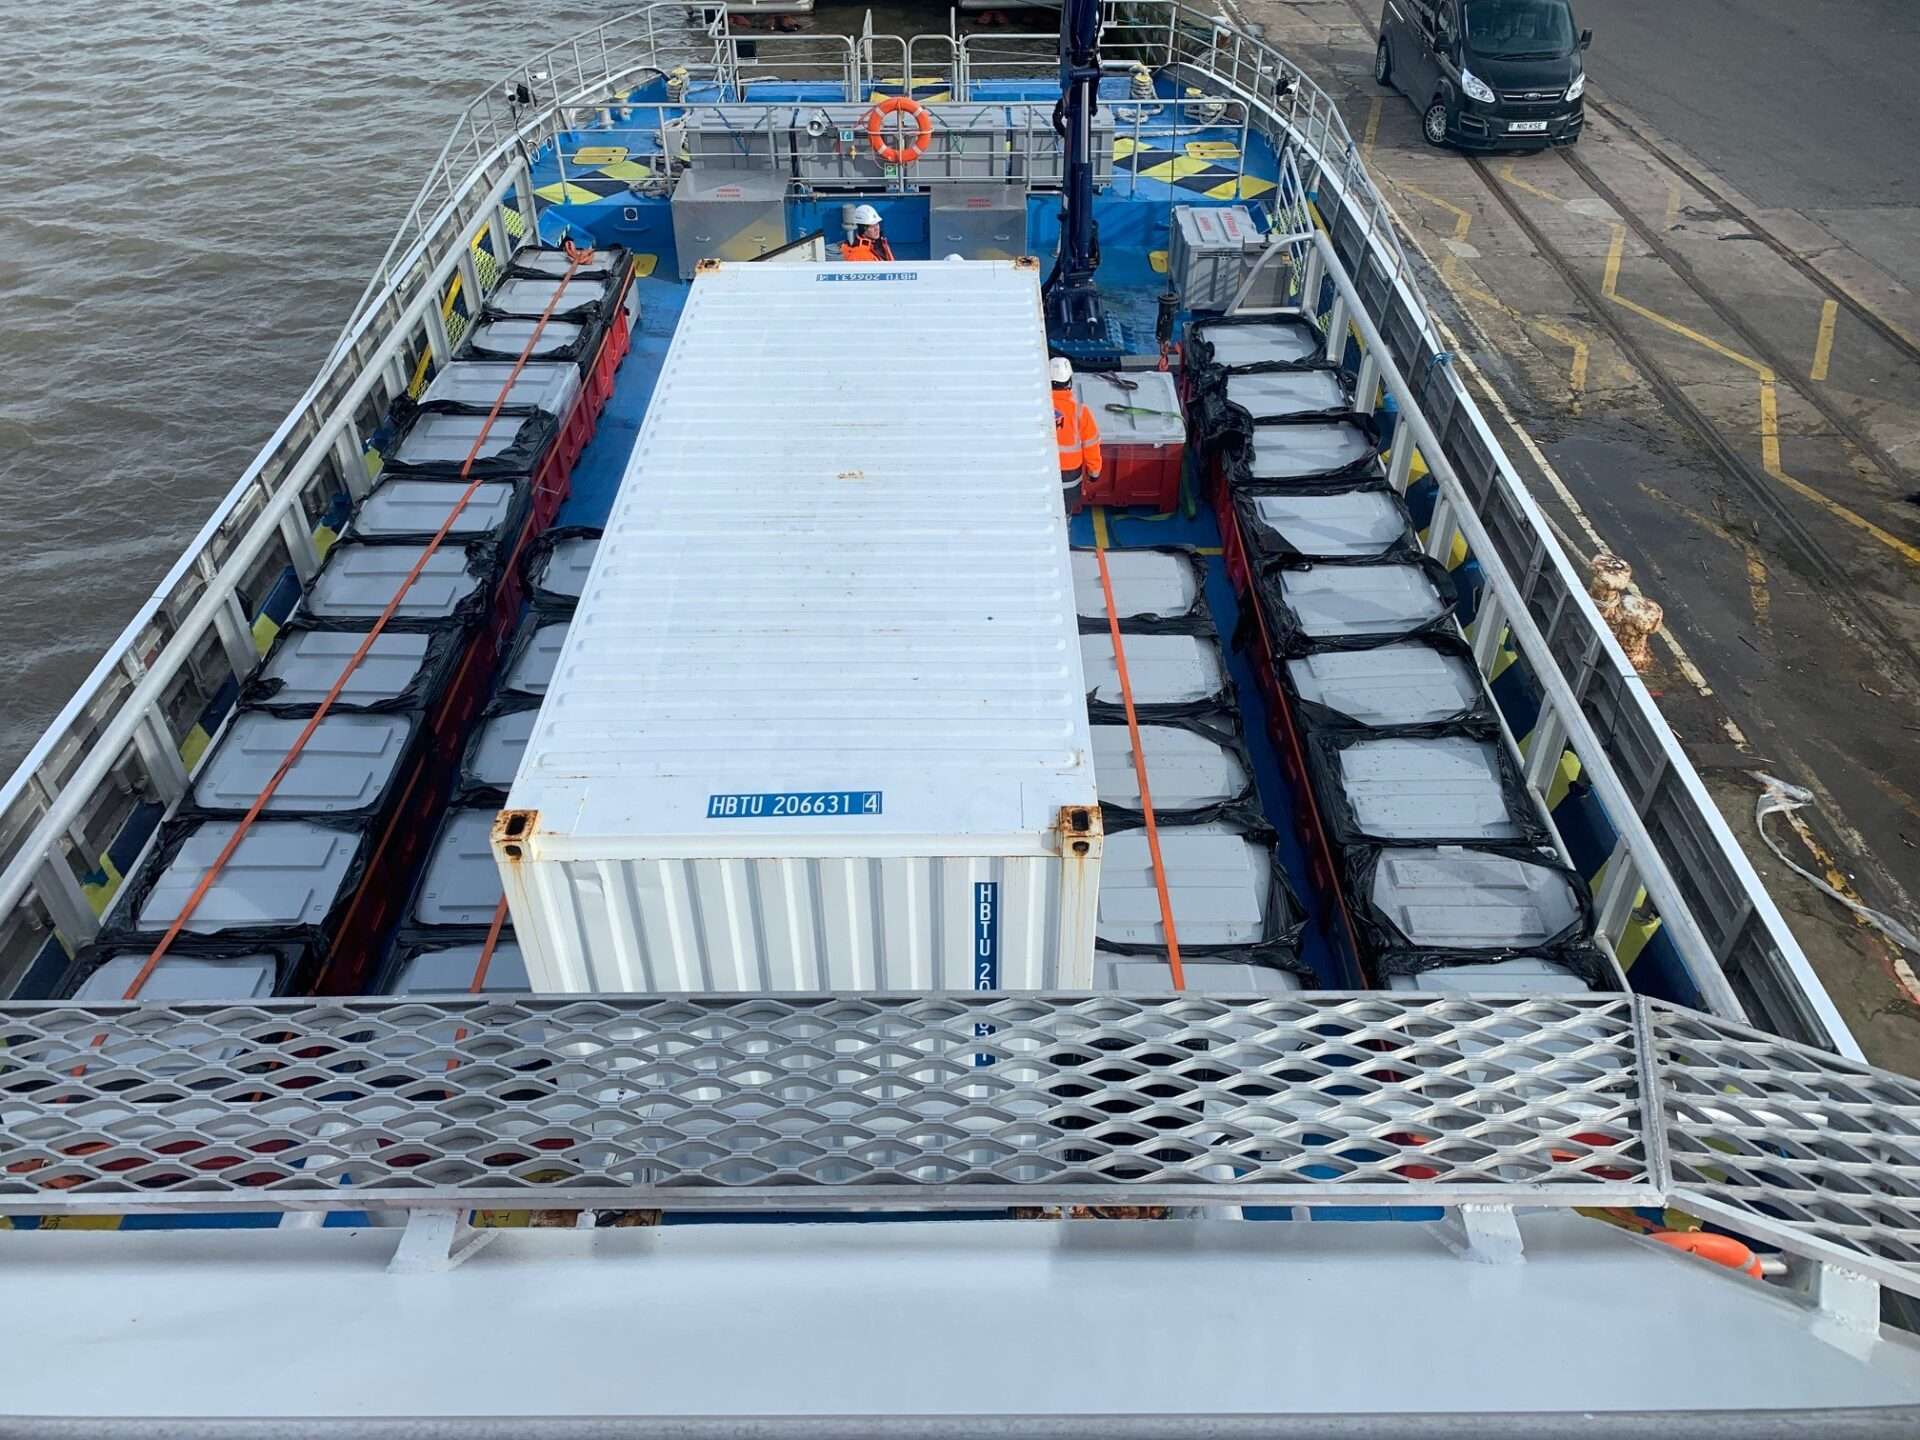 MHO ship - Cargo on deck